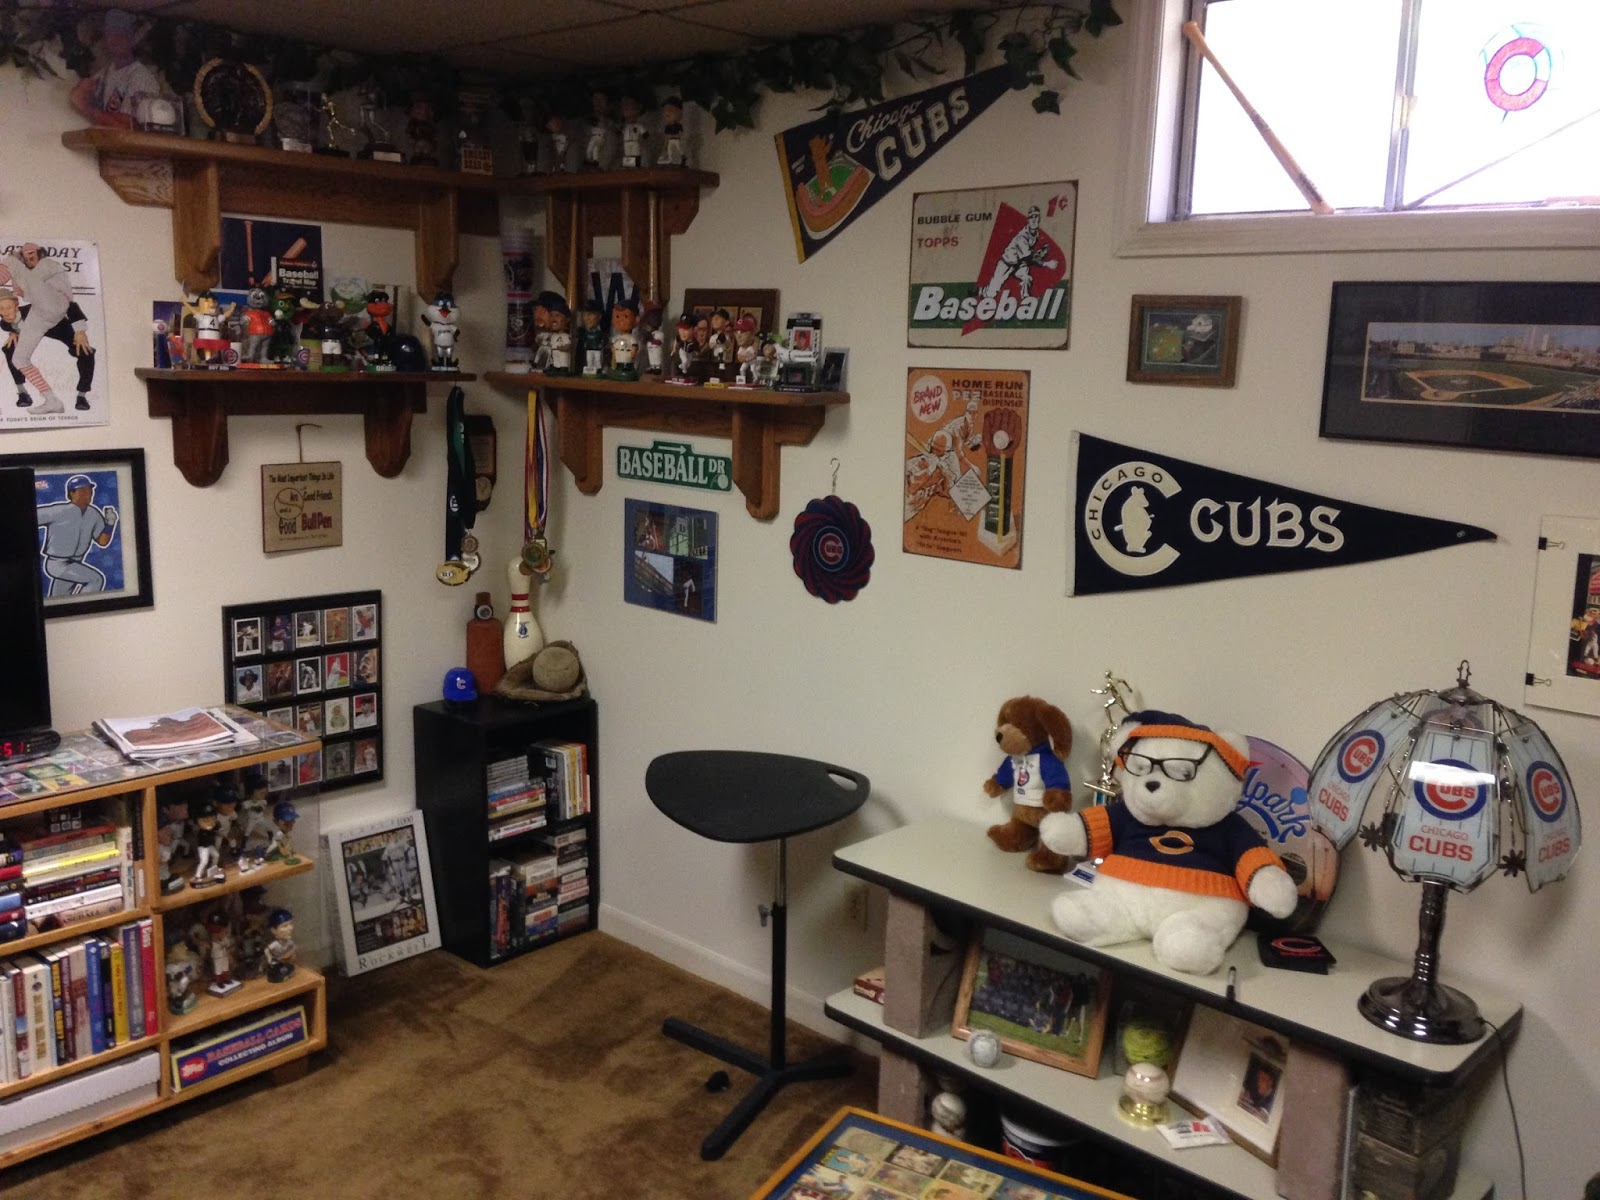 There Are Bobbleheads On The Shelves In Upper Left Corner And Baseball Movies VHS Within Black Shelving Unit Floor